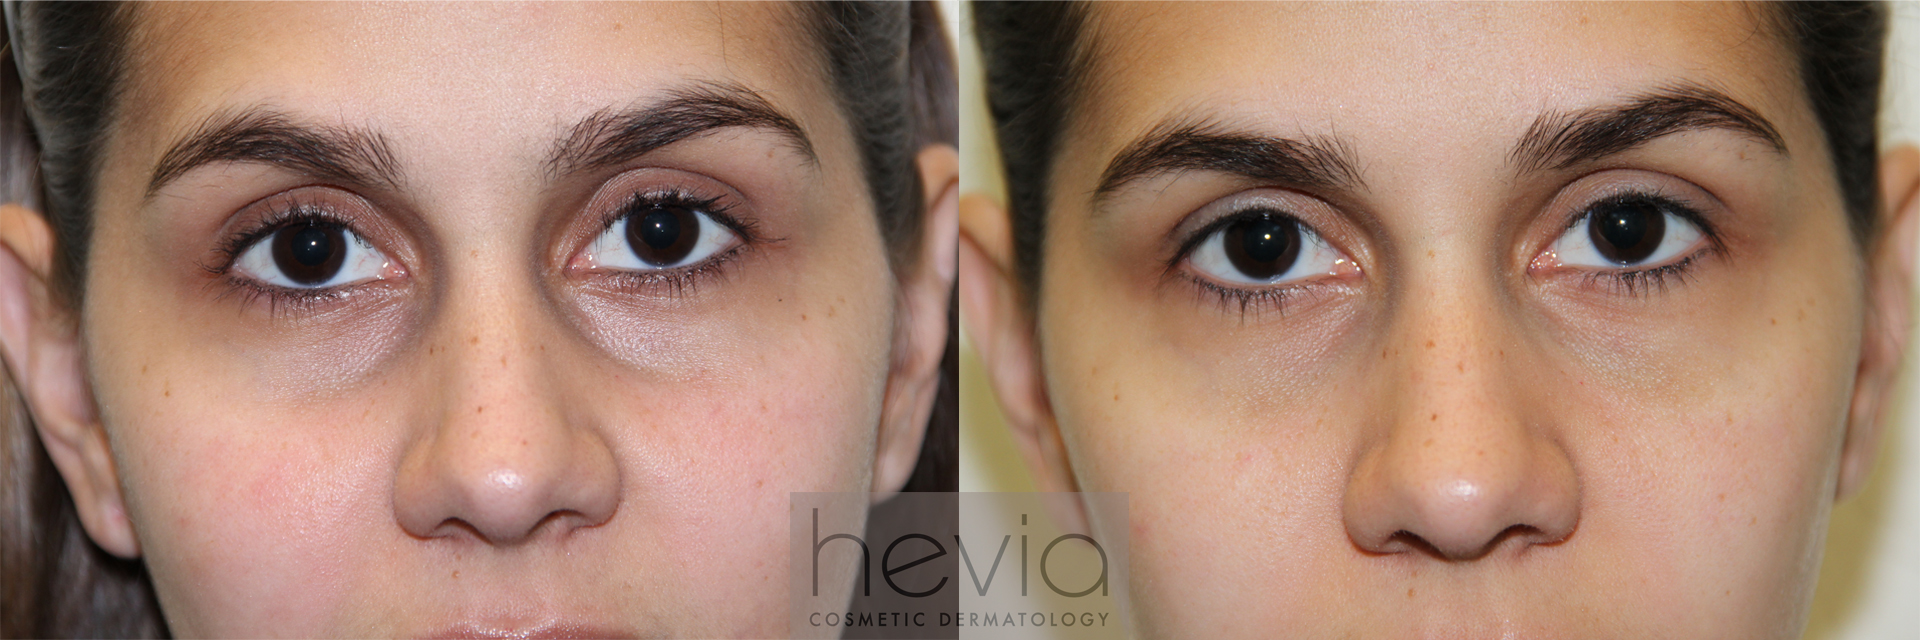 Undereye Correction Female before and after